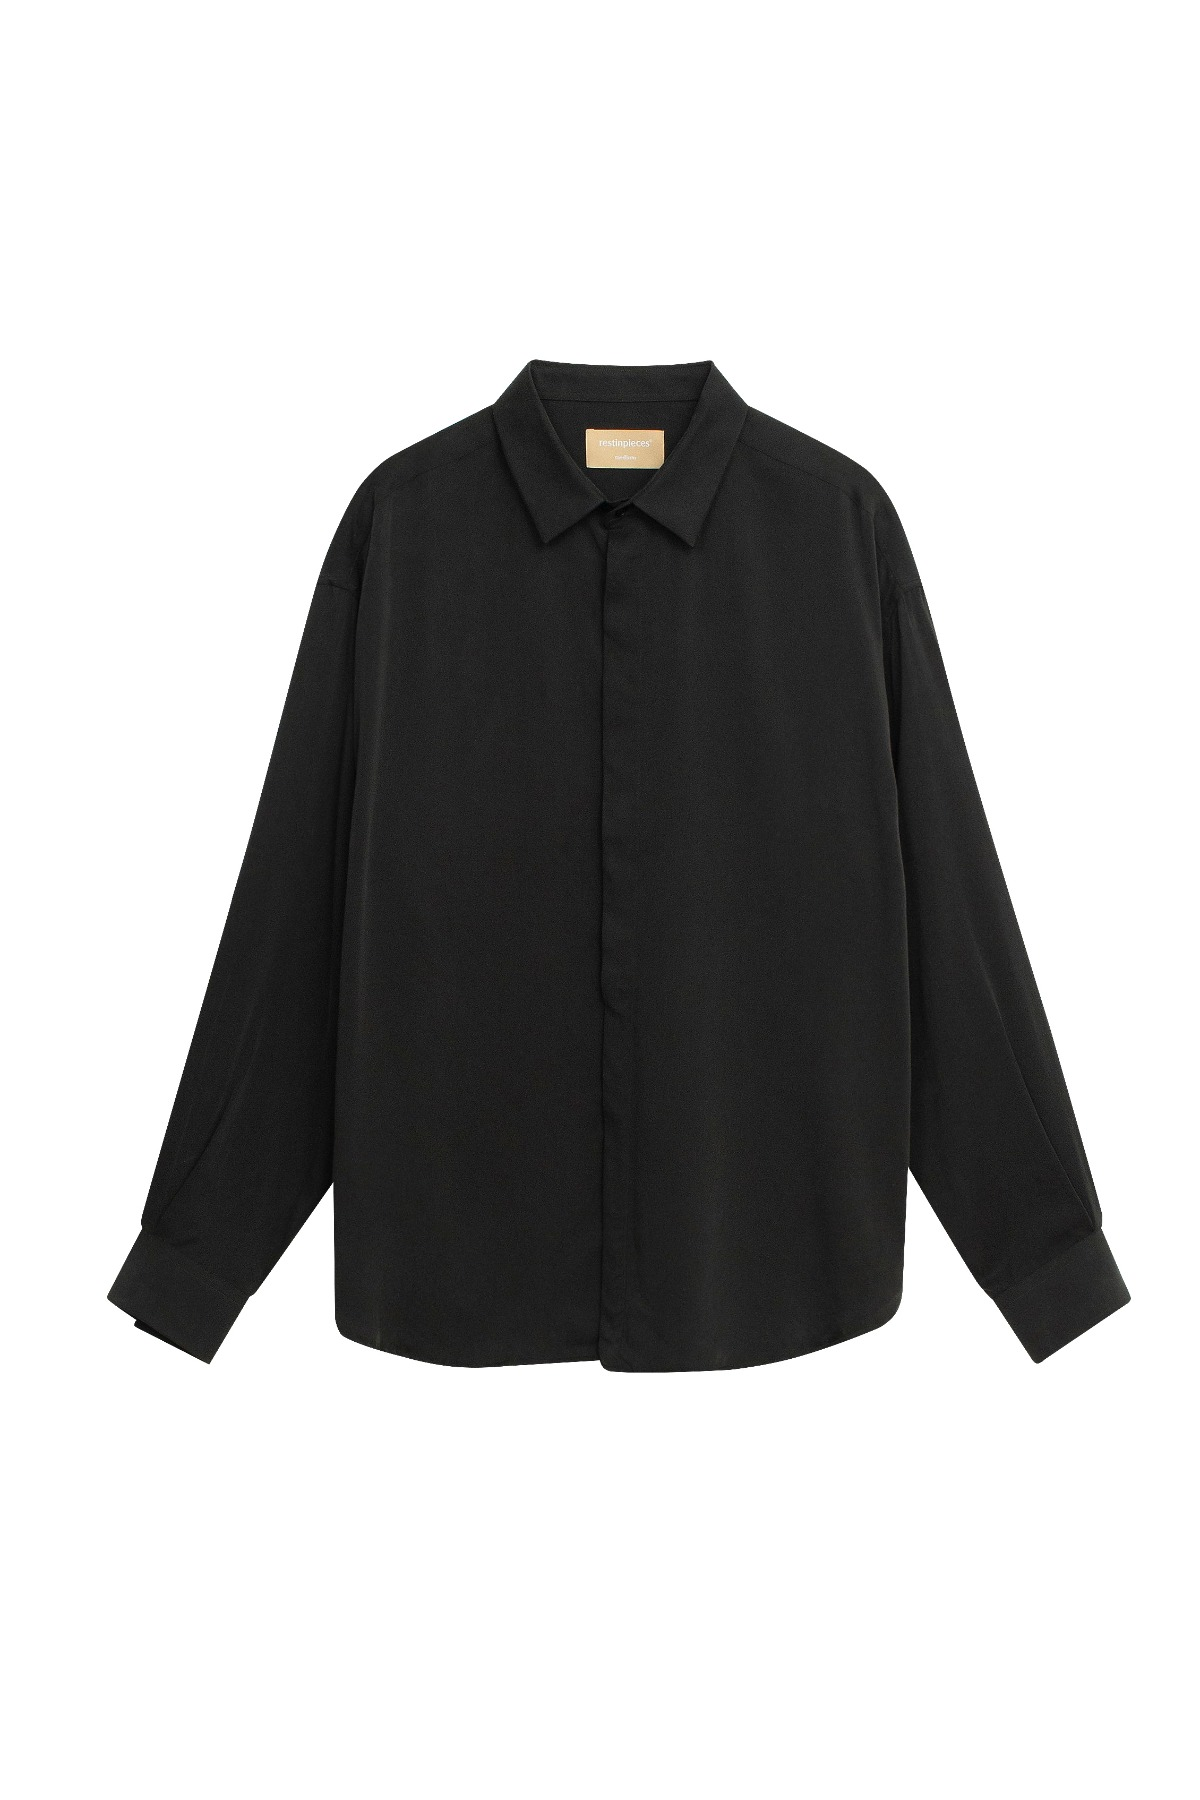 [pre-order] capsule collection modal shirt